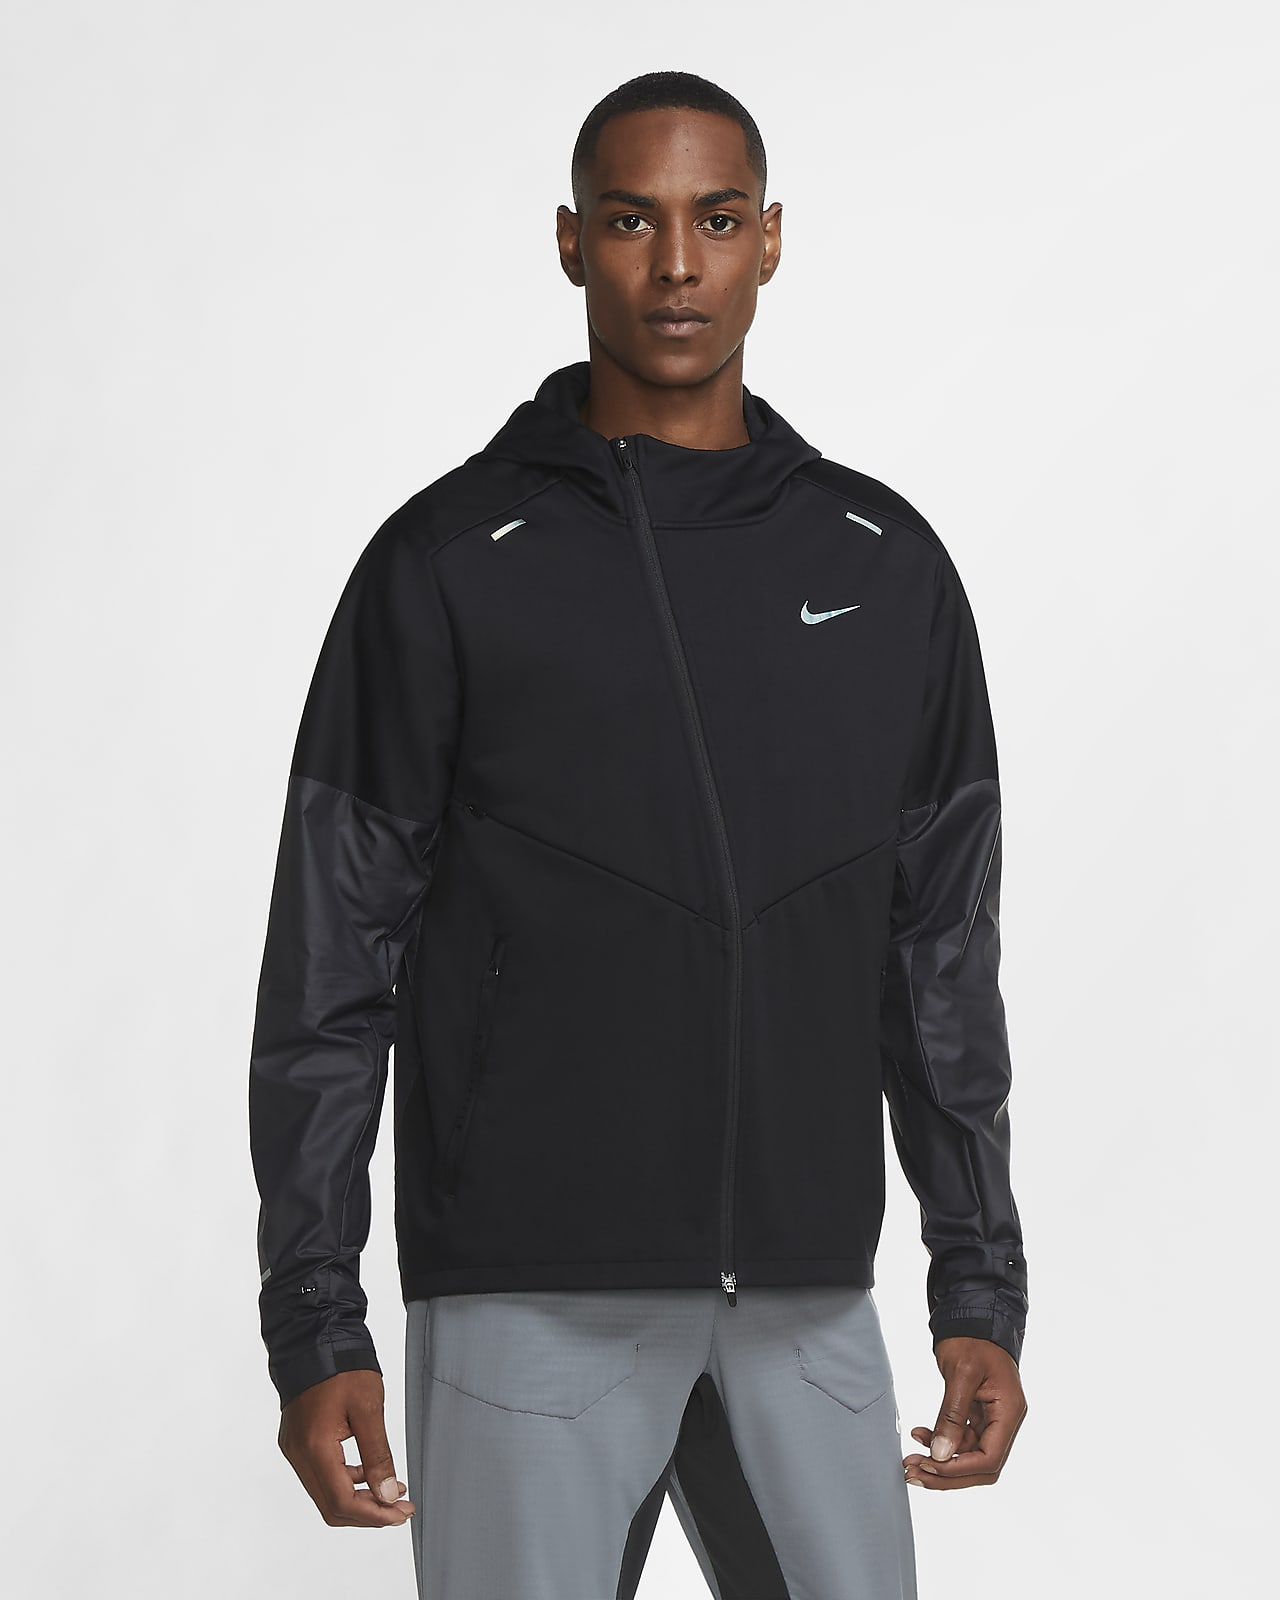 Nike Sphere Shieldrunner Men's Running Jacket